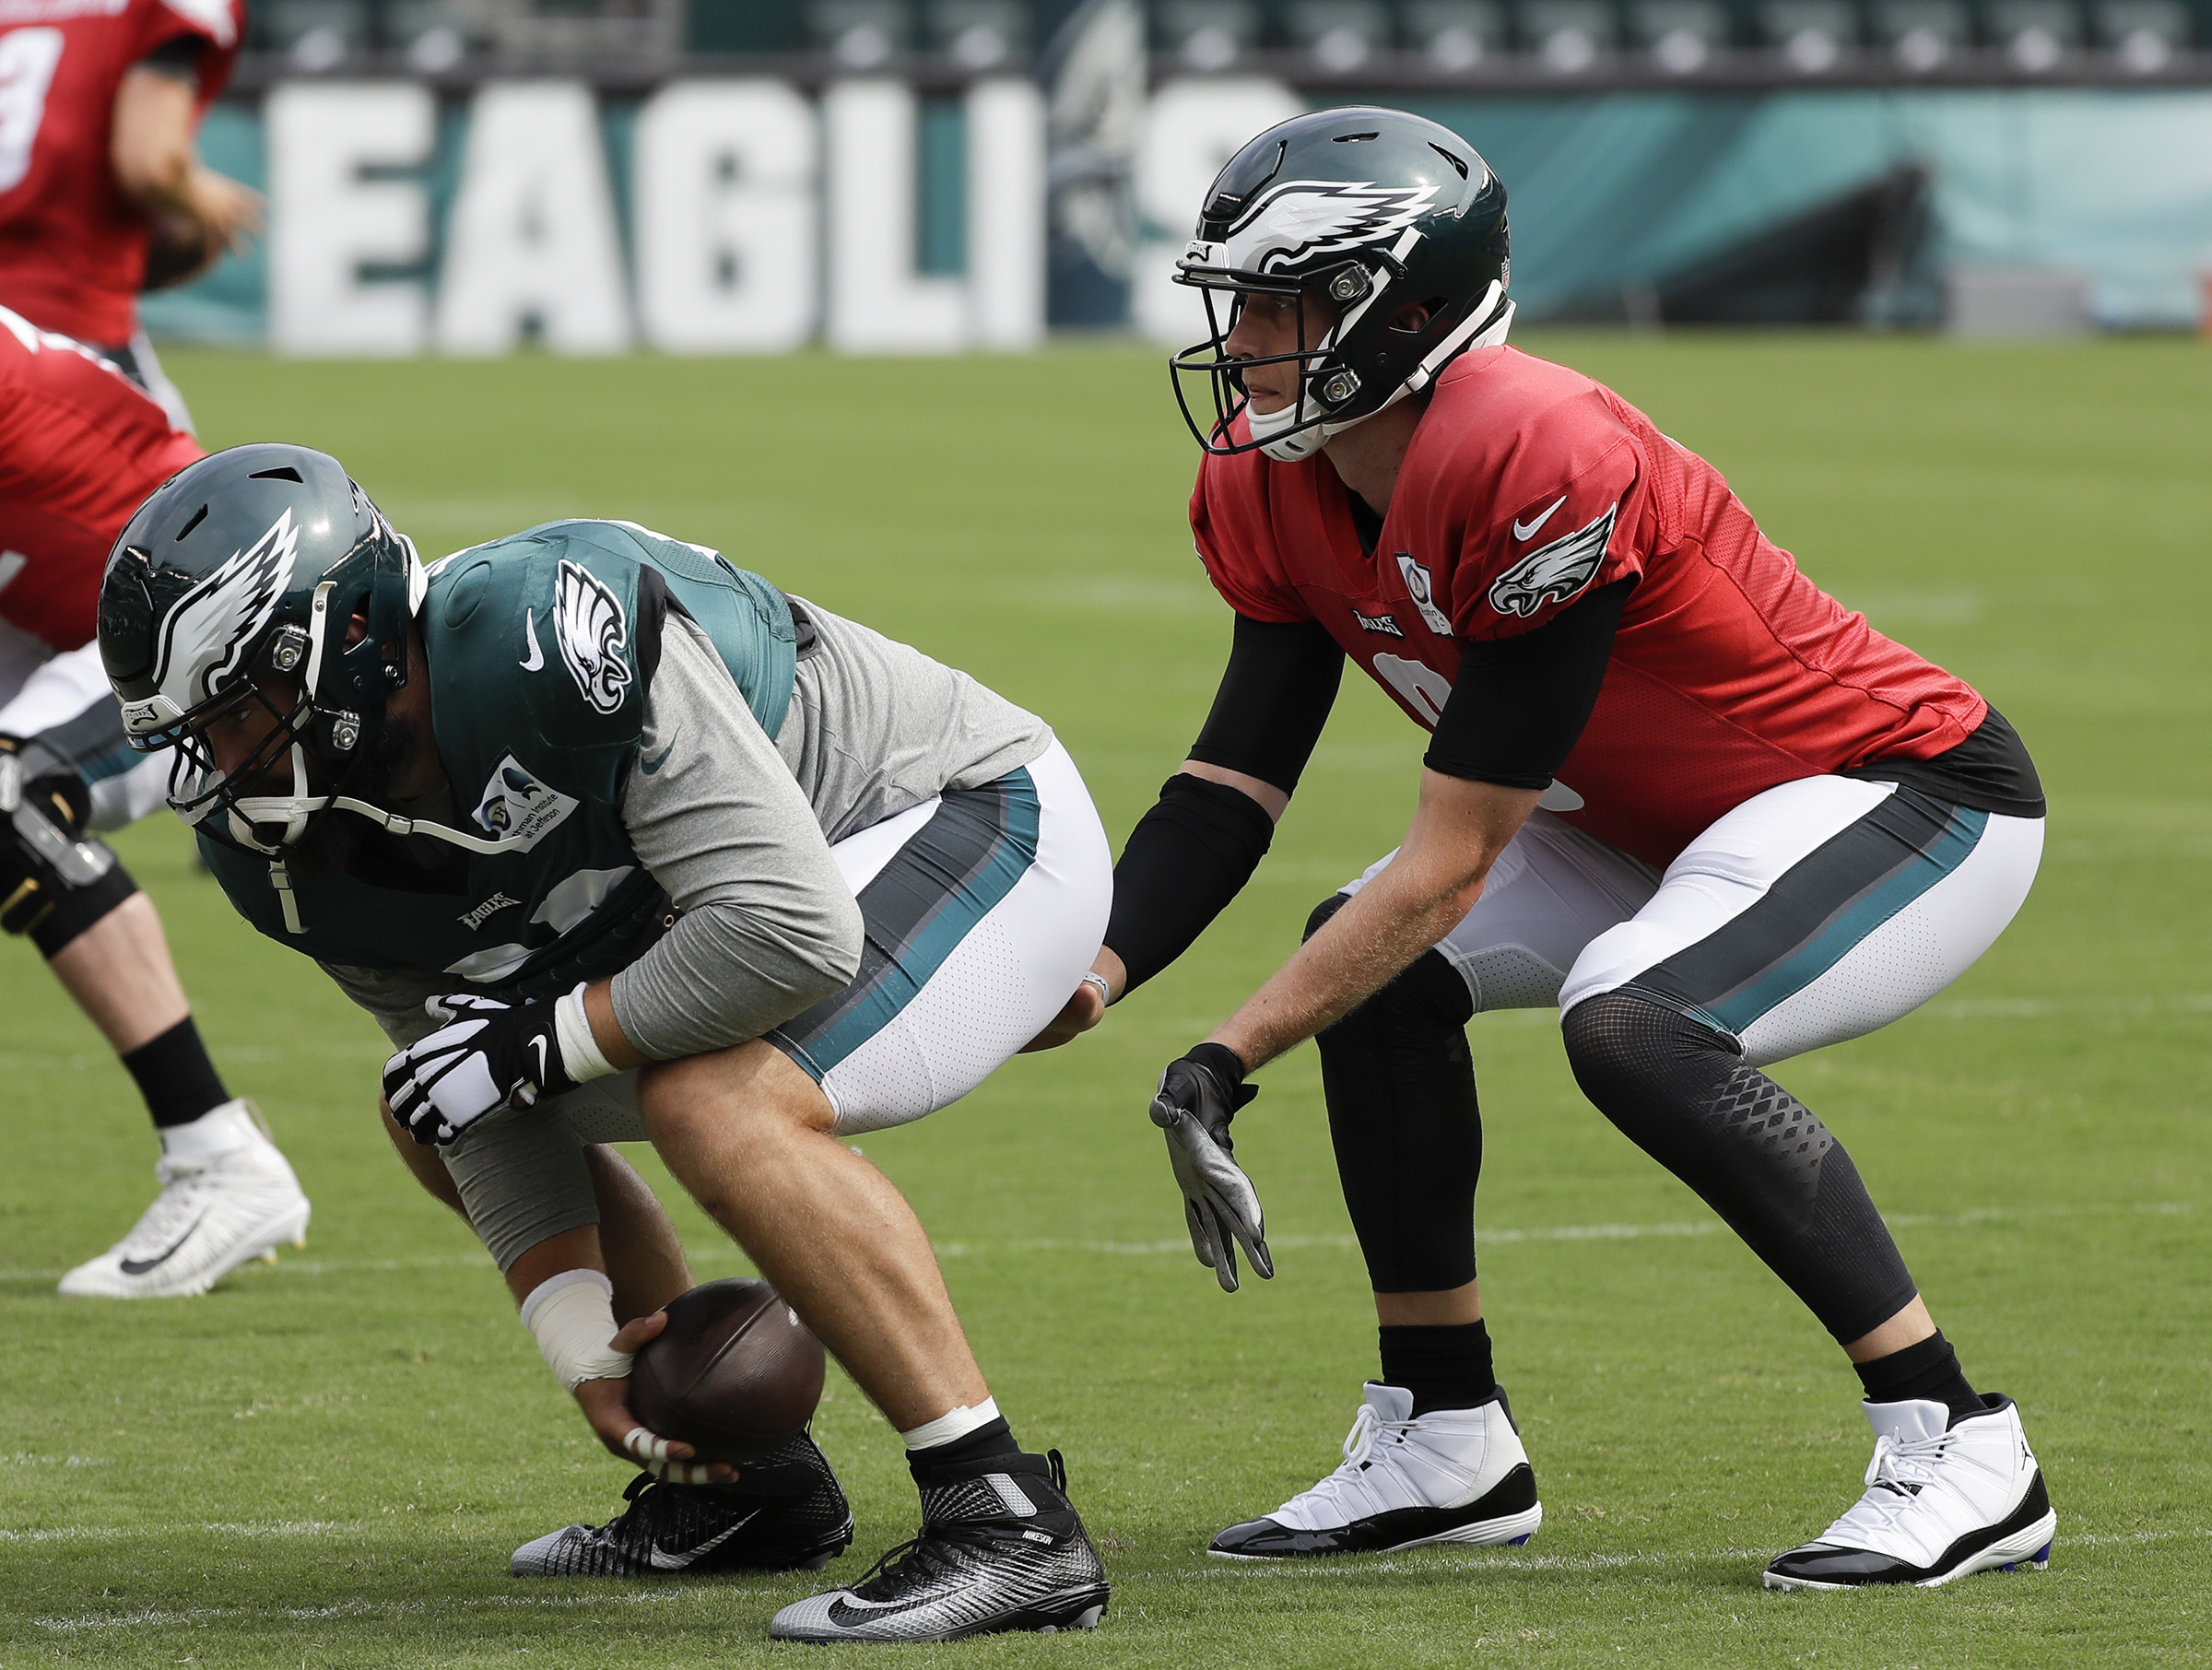 Eagles center Jason Kelce snaps the football to quarterback Nick Foles at Lincoln Financial Field in South Philadelphia on Saturday, August 11, 2018. YONG KIM / Staff Photographer